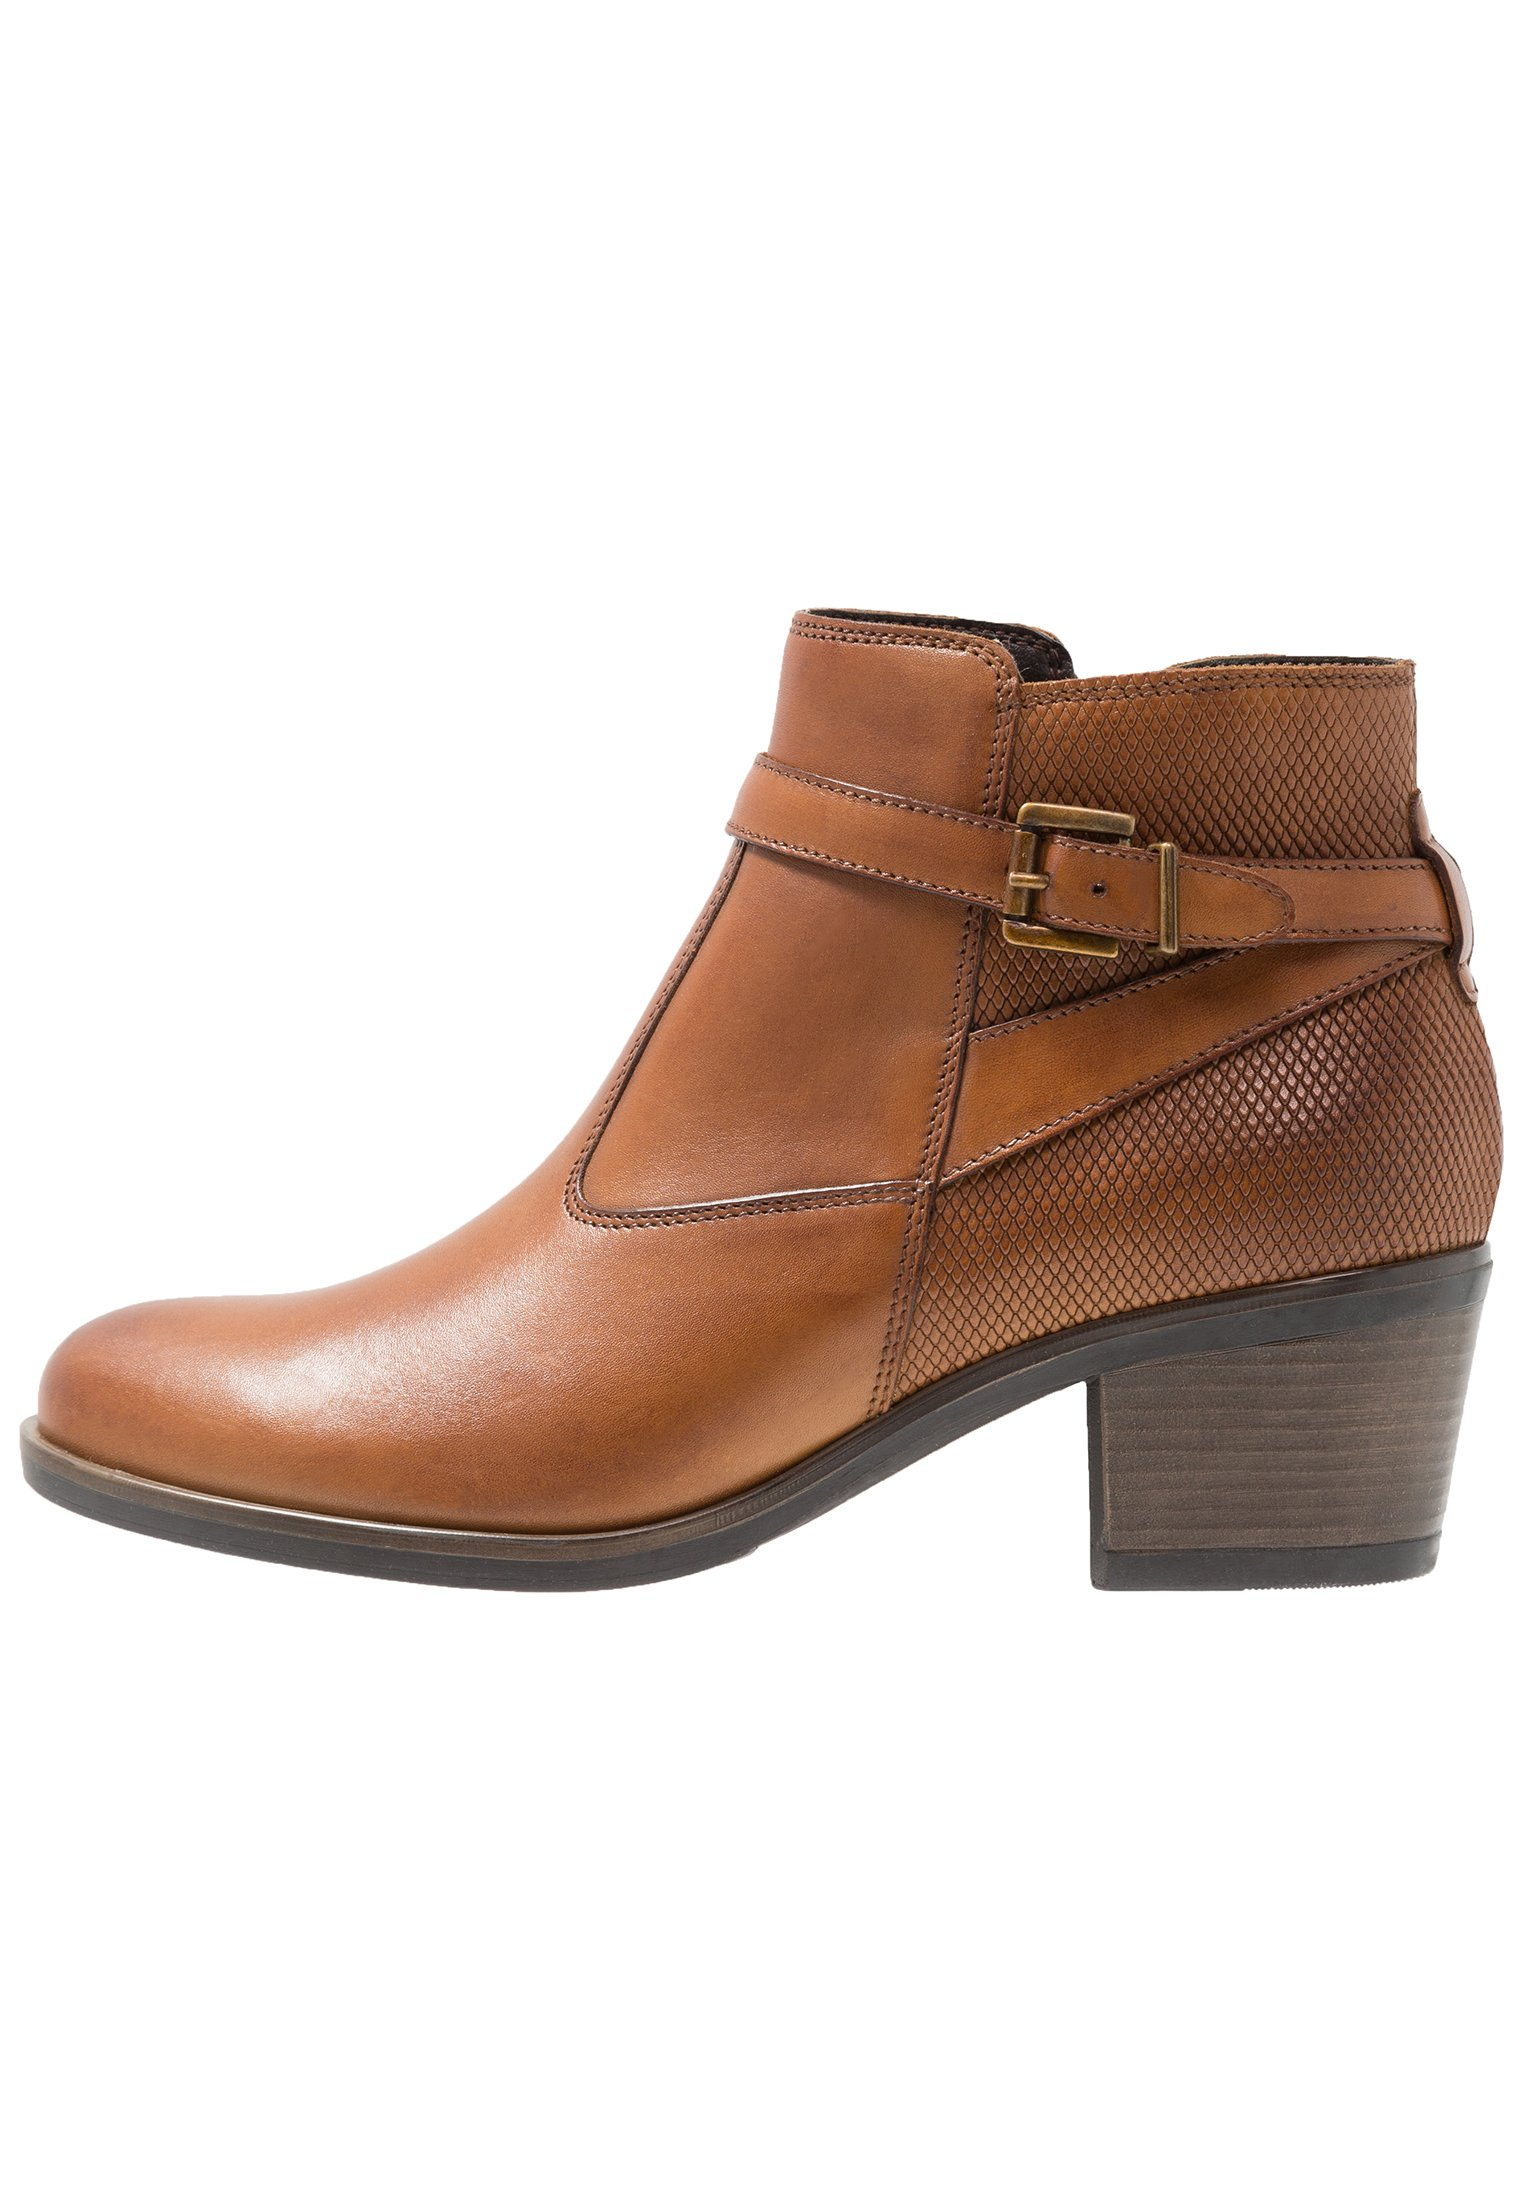 Pier One Ankle boot - cognac